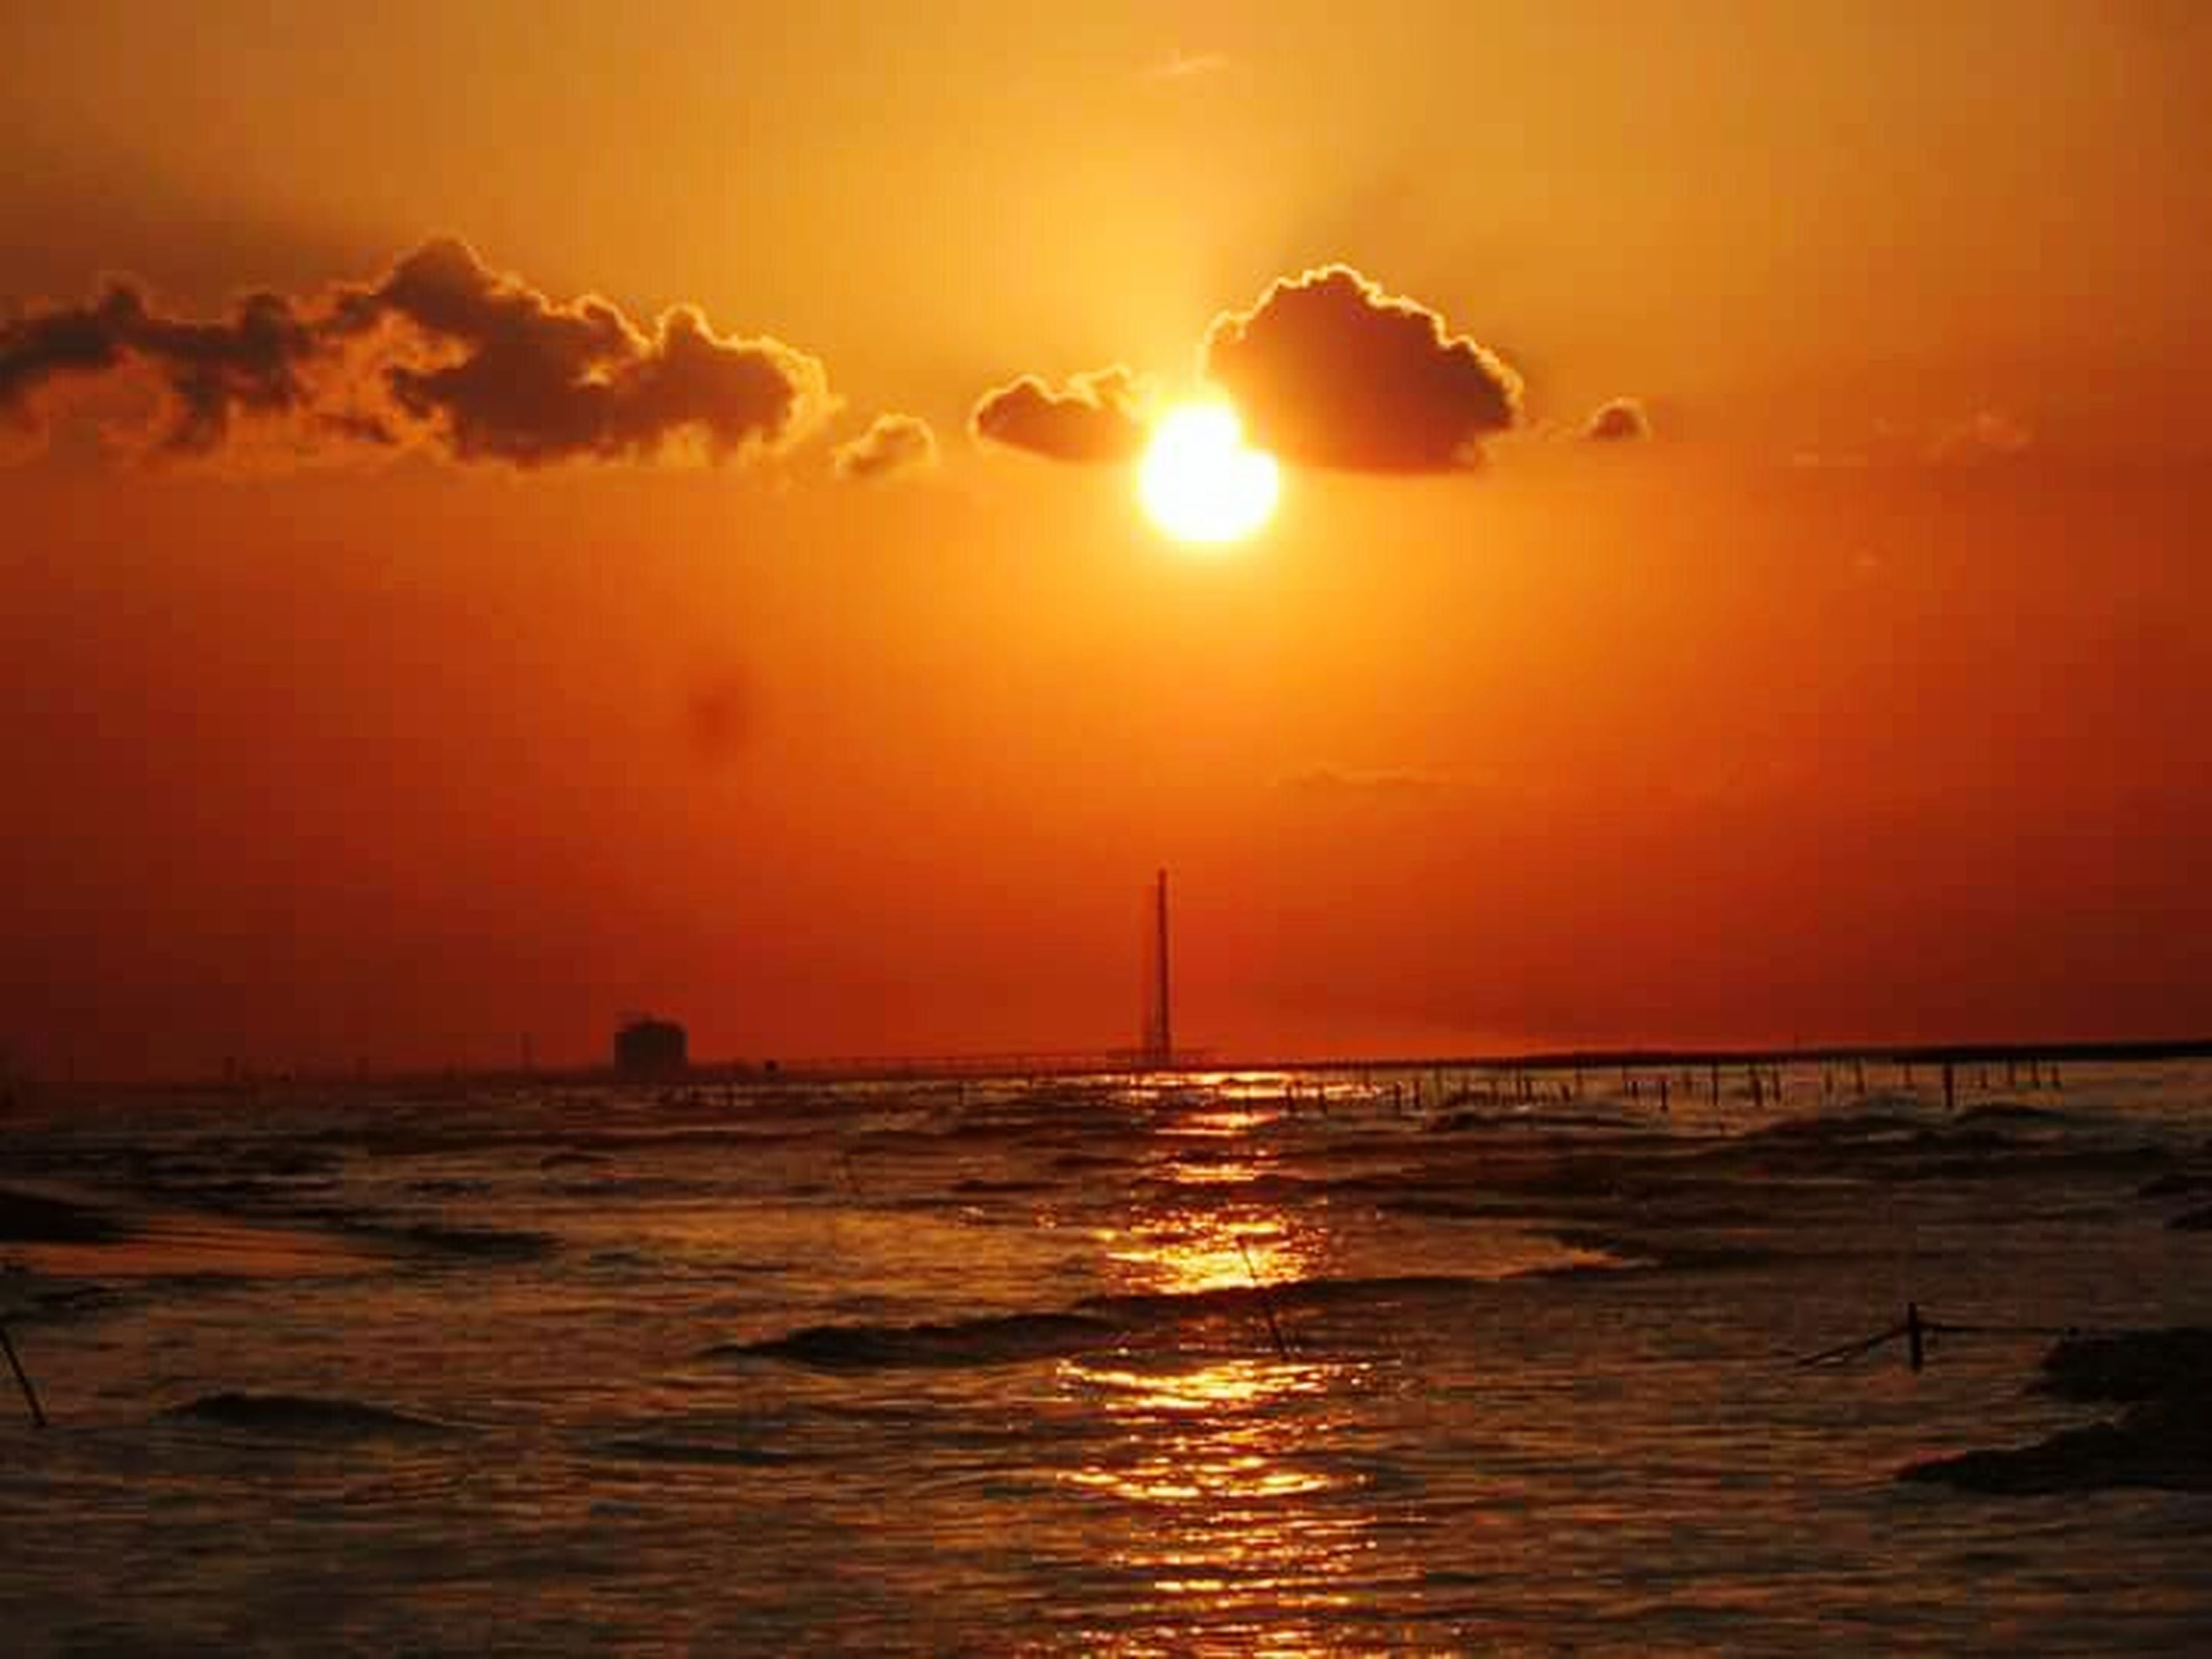 sunset, sea, orange color, water, sun, scenics, horizon over water, tranquil scene, beauty in nature, tranquility, waterfront, idyllic, sky, nature, reflection, silhouette, rippled, beach, remote, outdoors